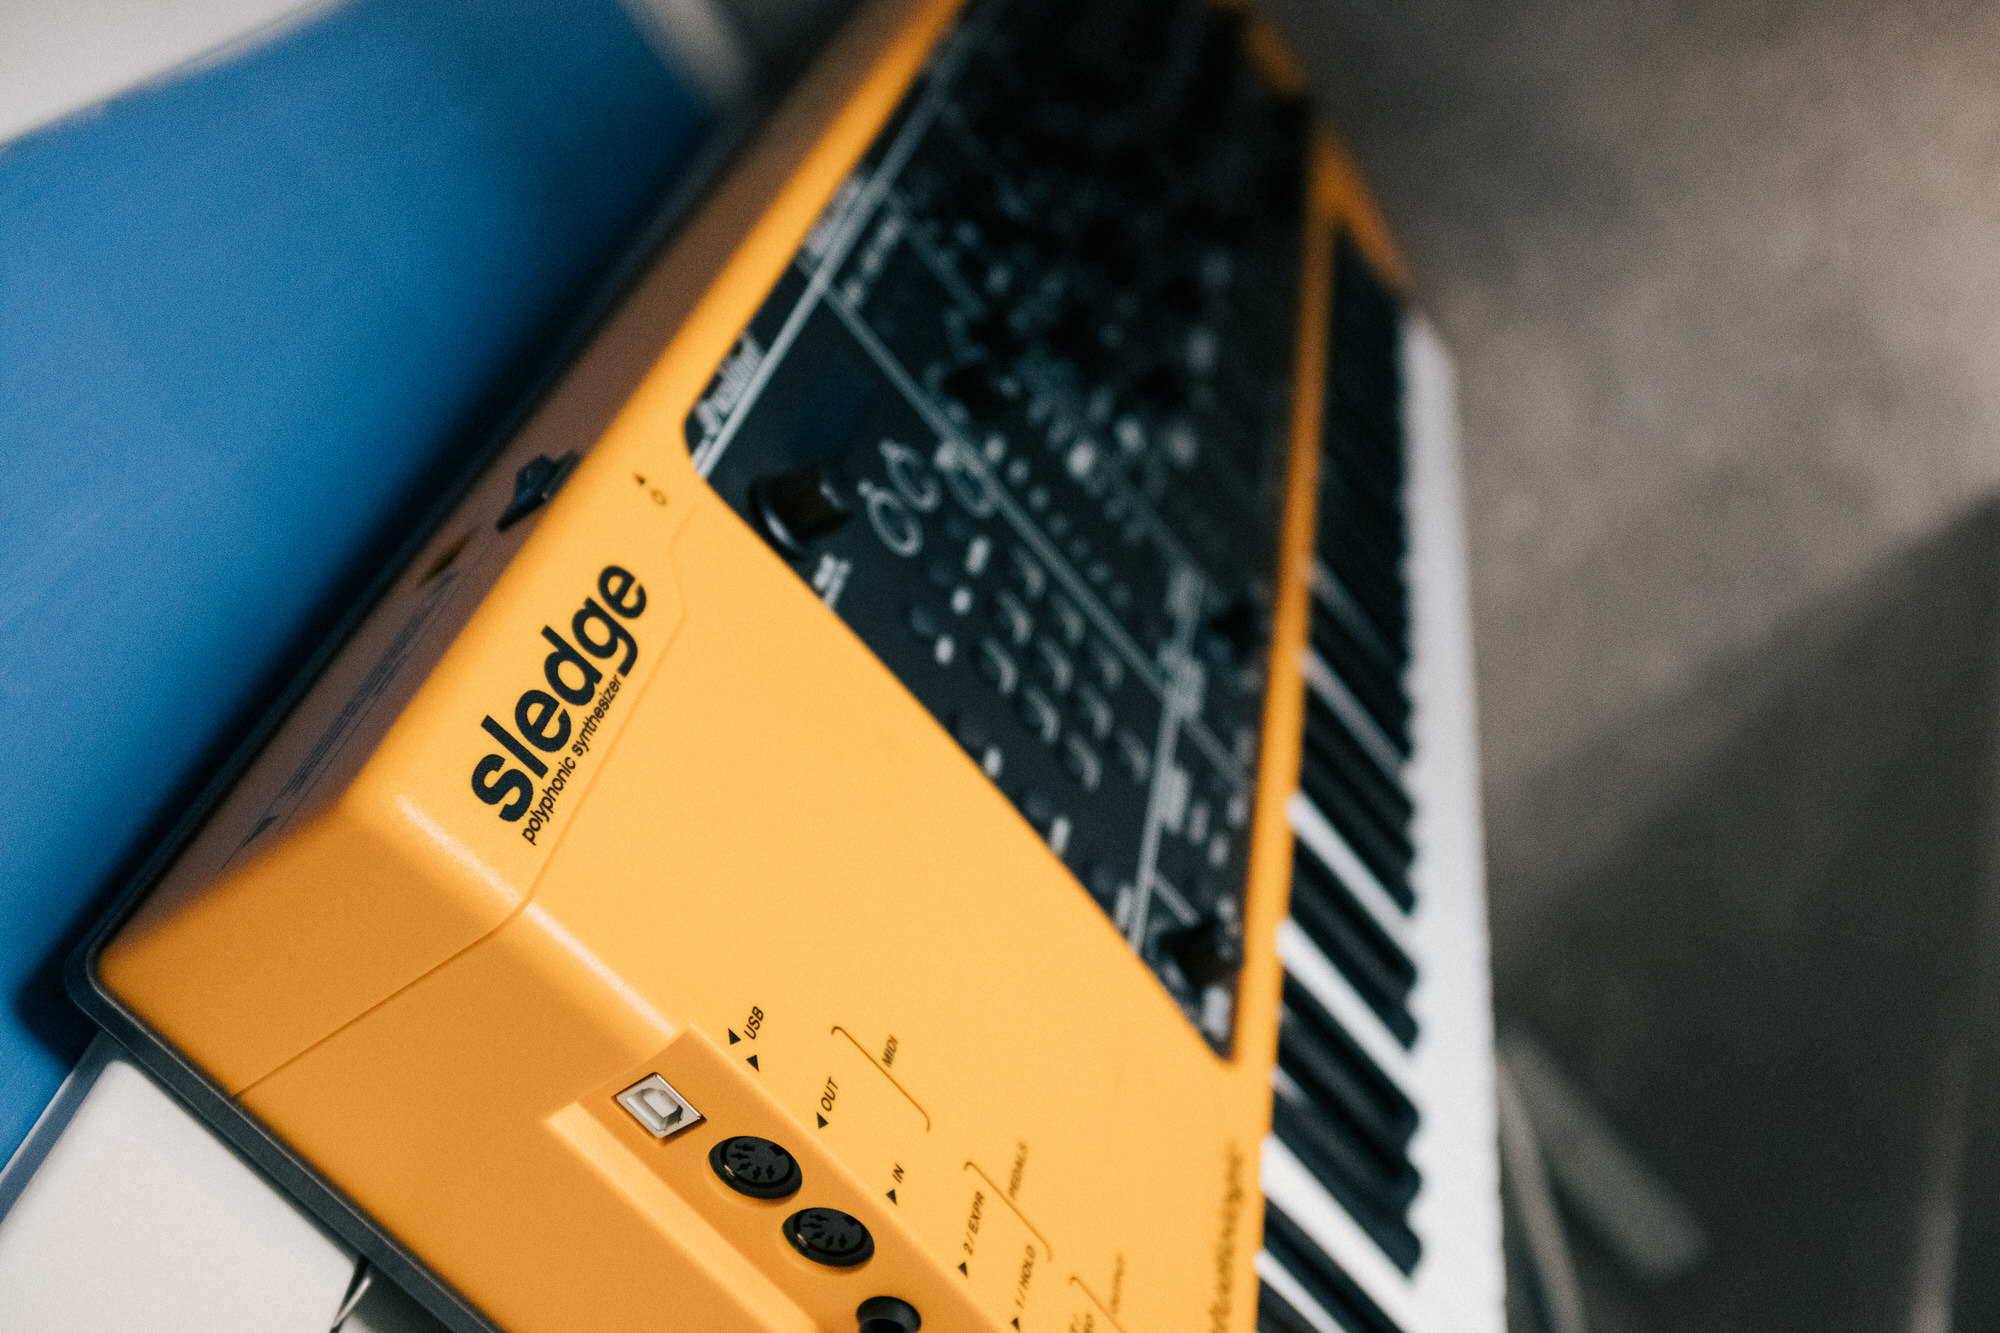 An image of the Studiologic Sledge.